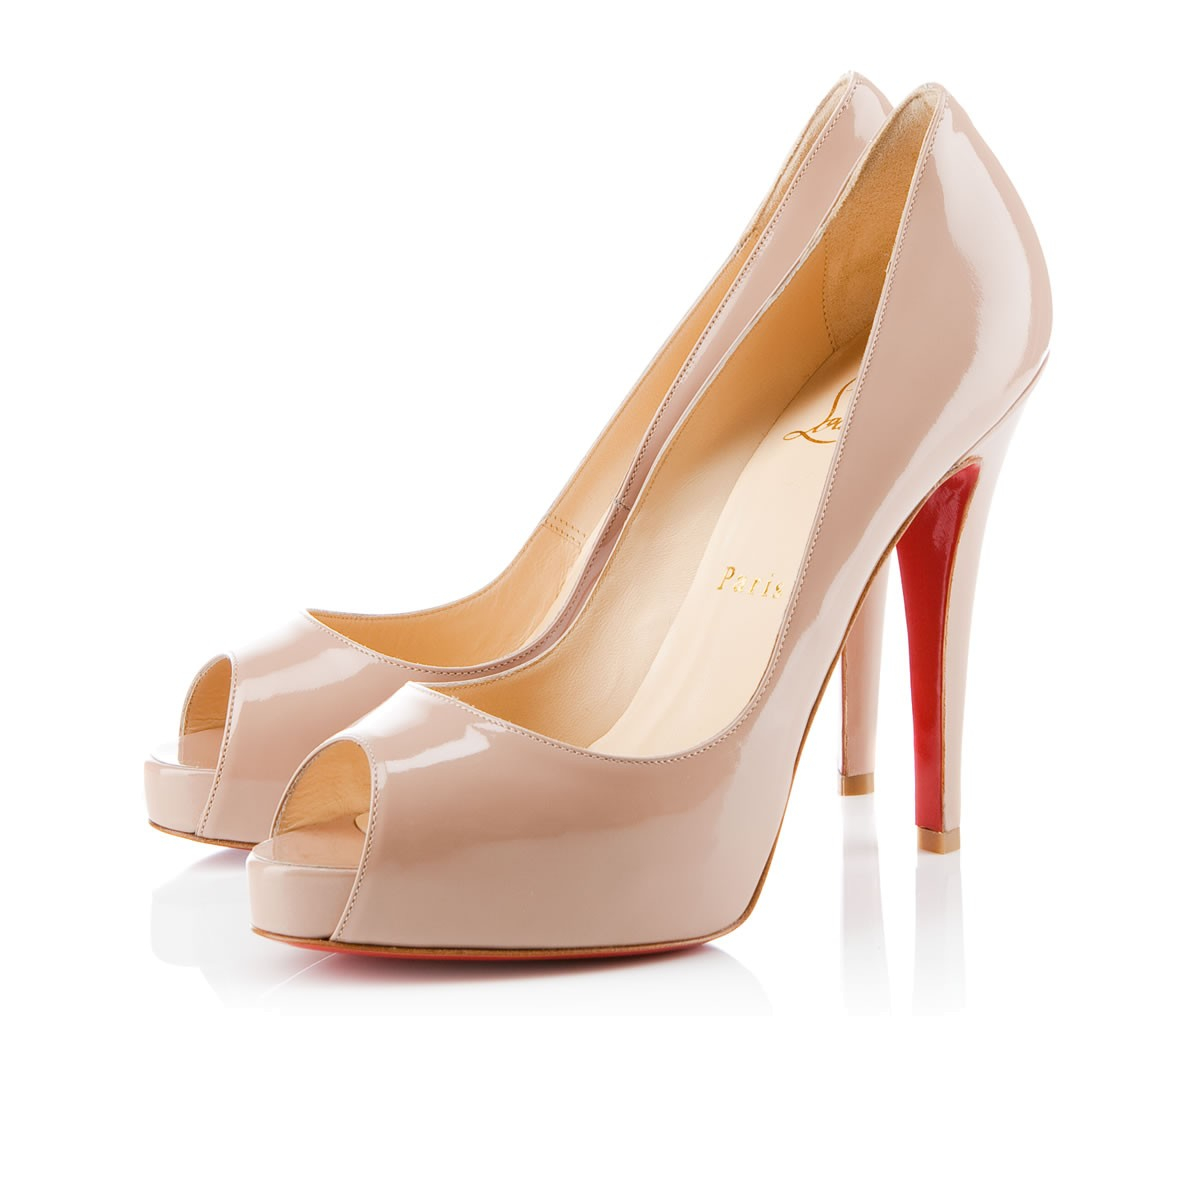 christian louboutin patent leather very prive pumps